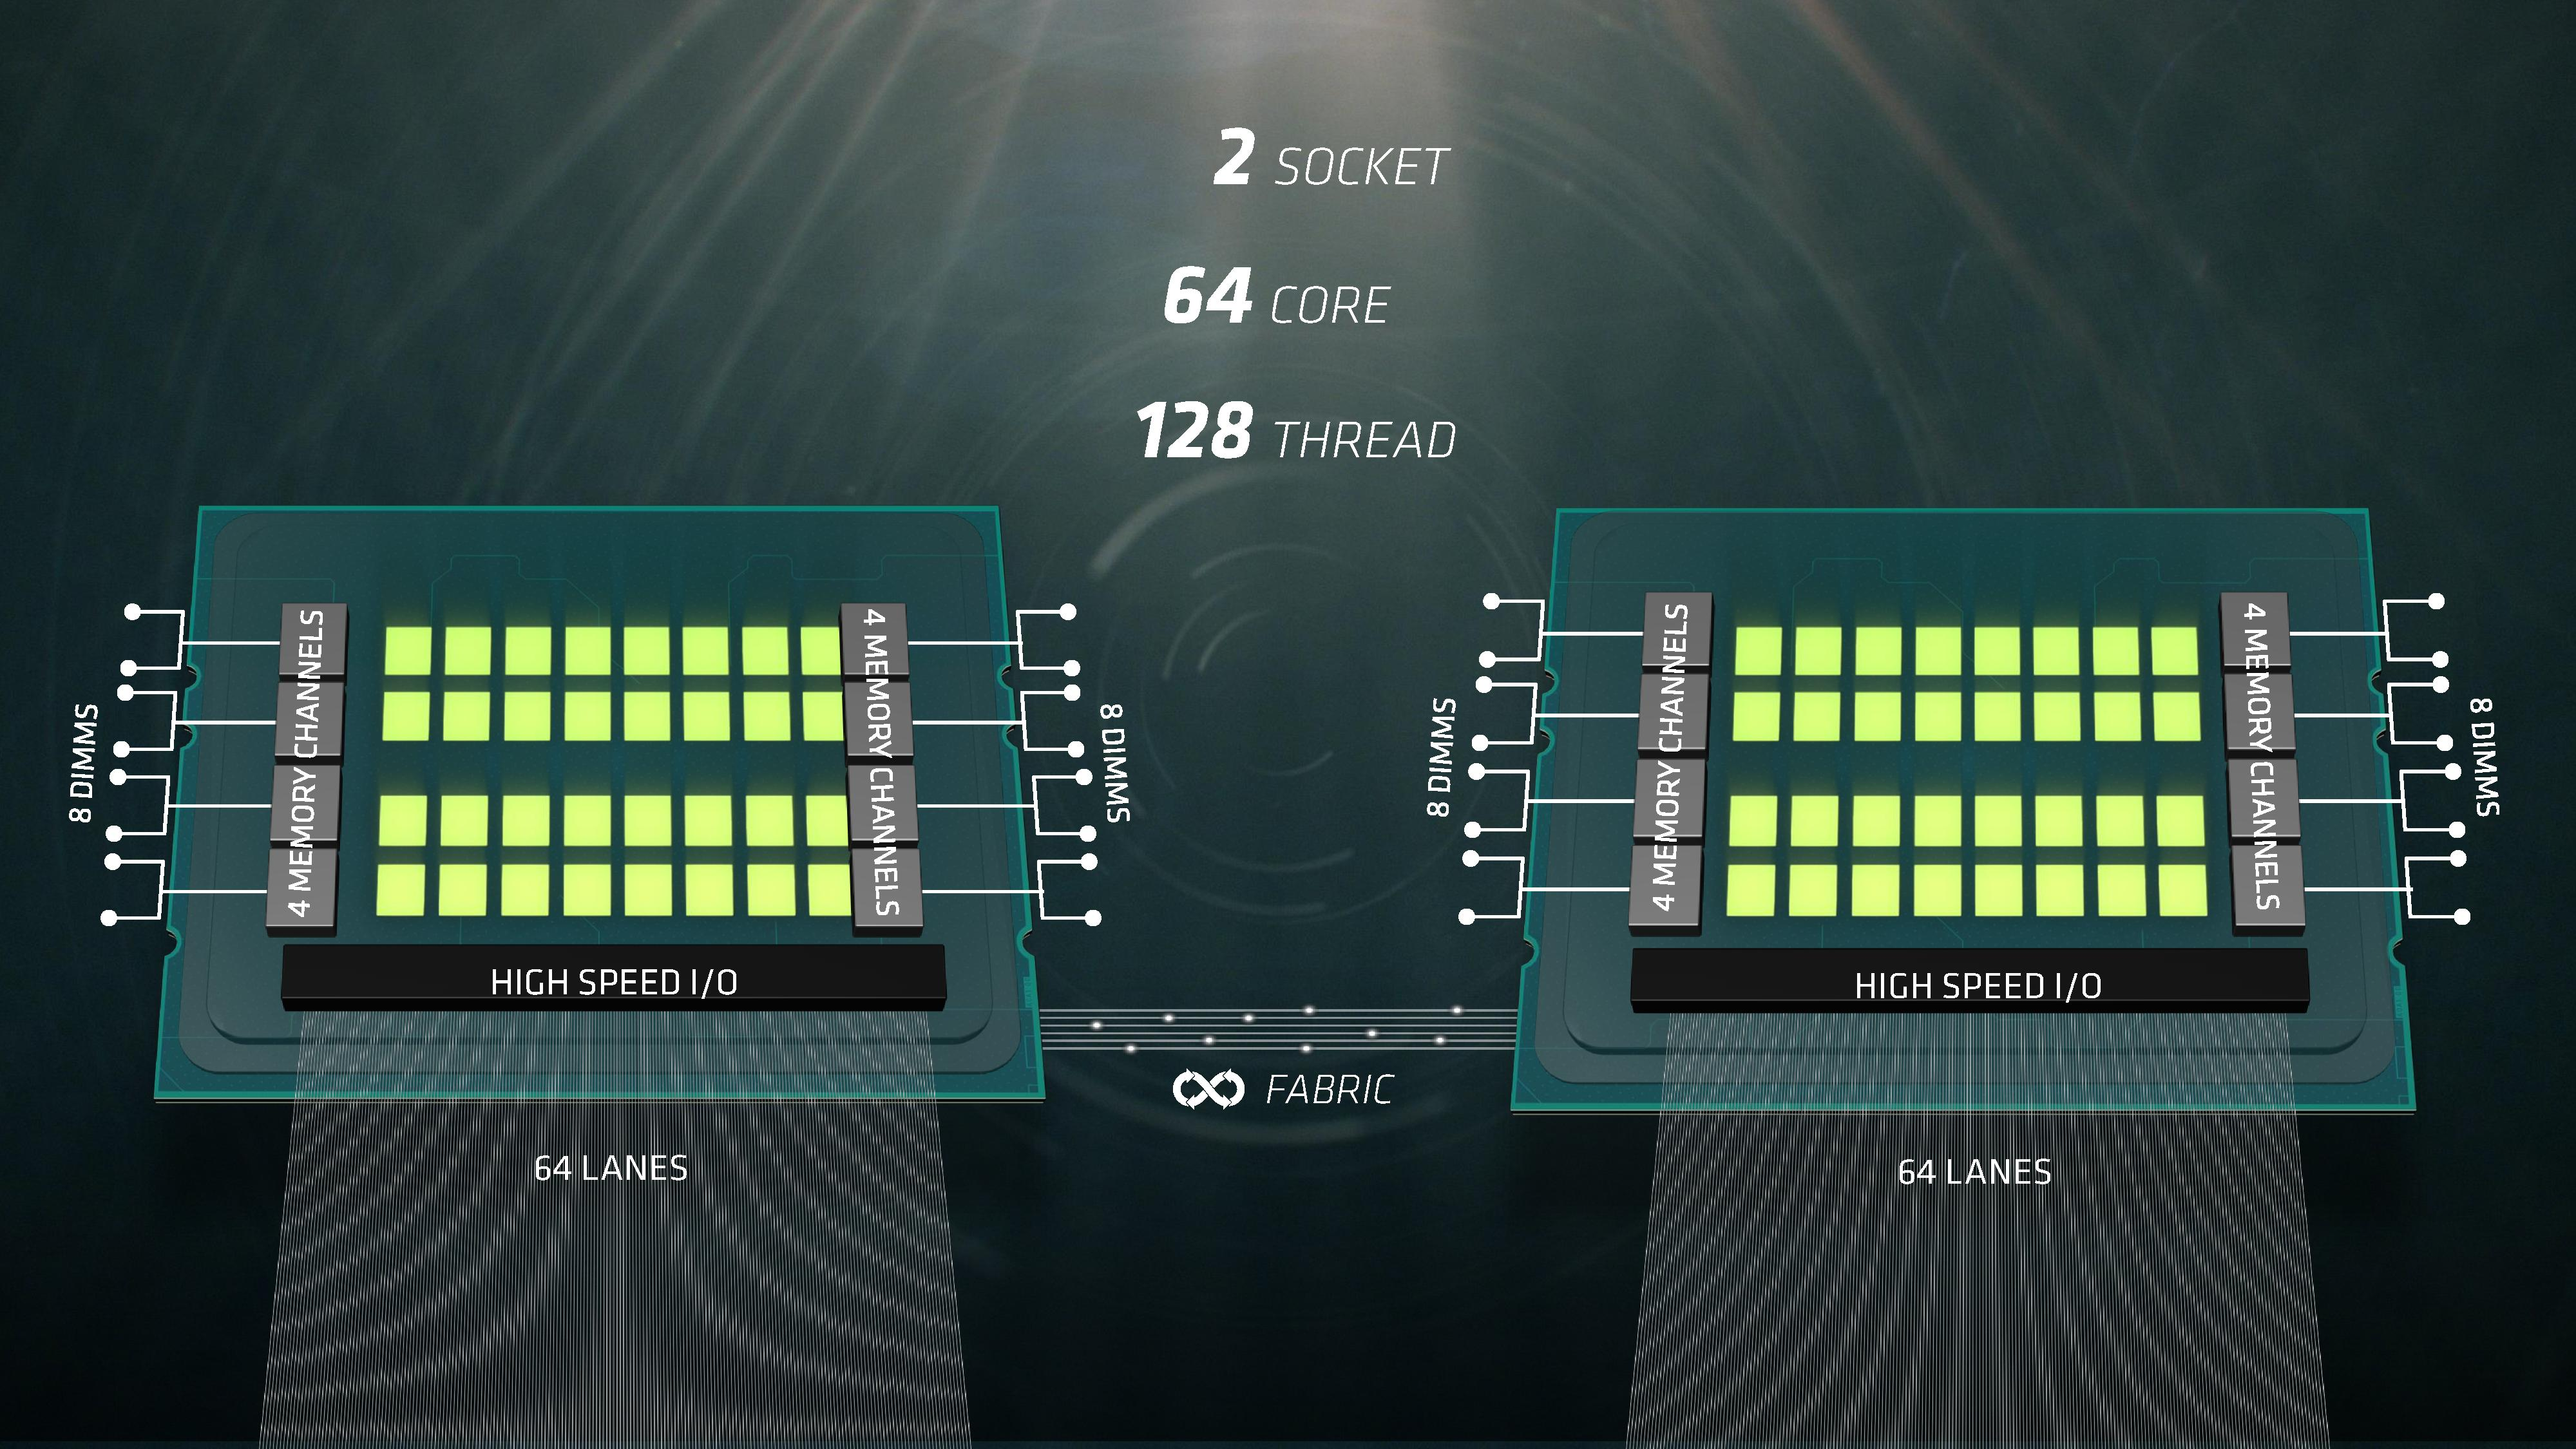 Amd Prepares 32 Core Naples Cpus For 1p And 2p Servers Coming In Q2 Motherboard Diagrams A Deeper Understanding Of The Parts While Not Specifically Mentioned Announcement Today We Do Know That Is Single Monolithic Die On Order 500mm2 Or Up